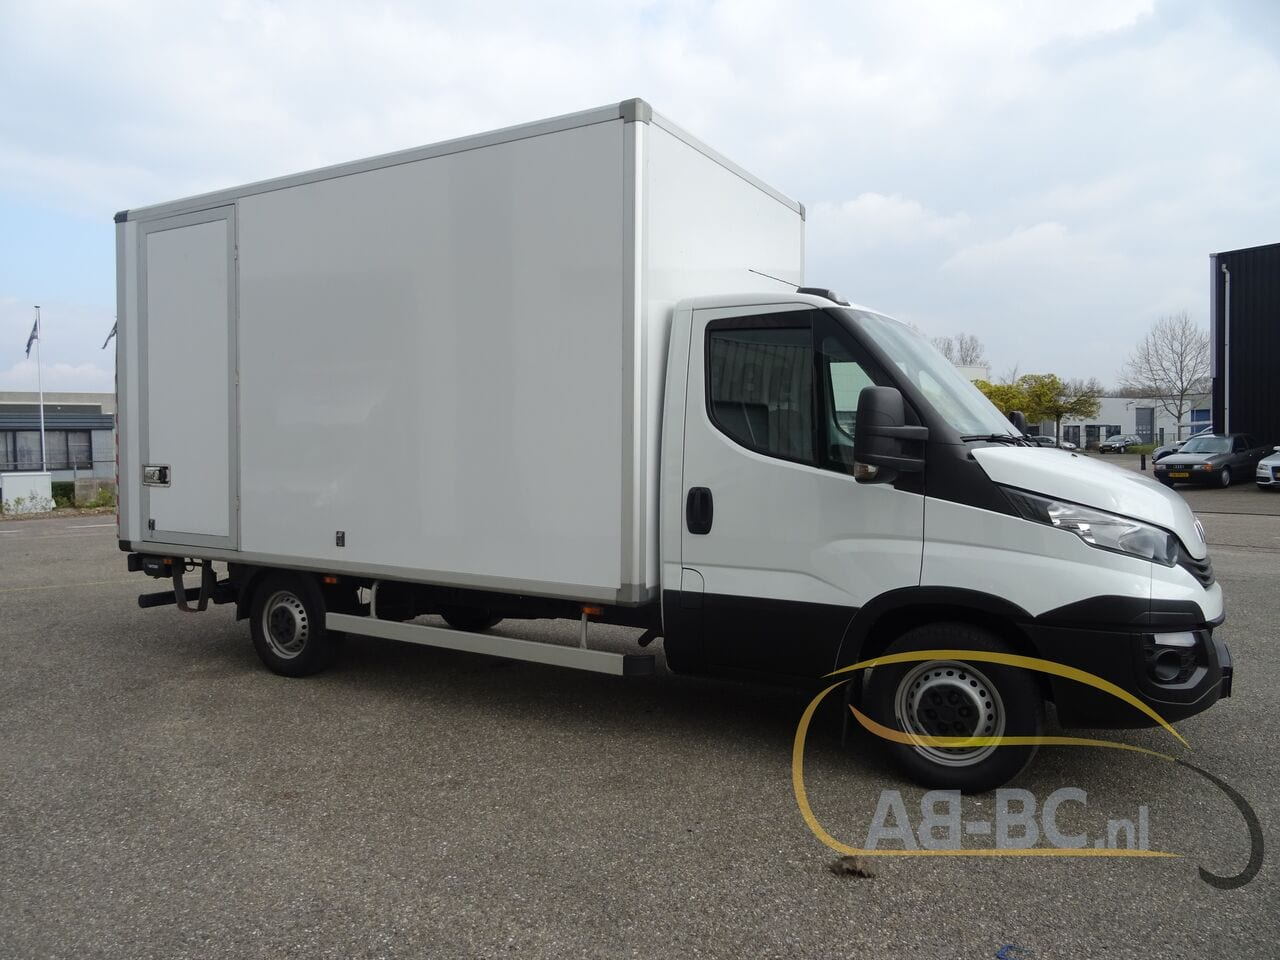 commercial-vehicle-box-truck-3-5tIVECO-Daily-35S14-EURO-6---1618841977882879457_big_55041604703023519e44ade02de34ae5--20081111411660340700